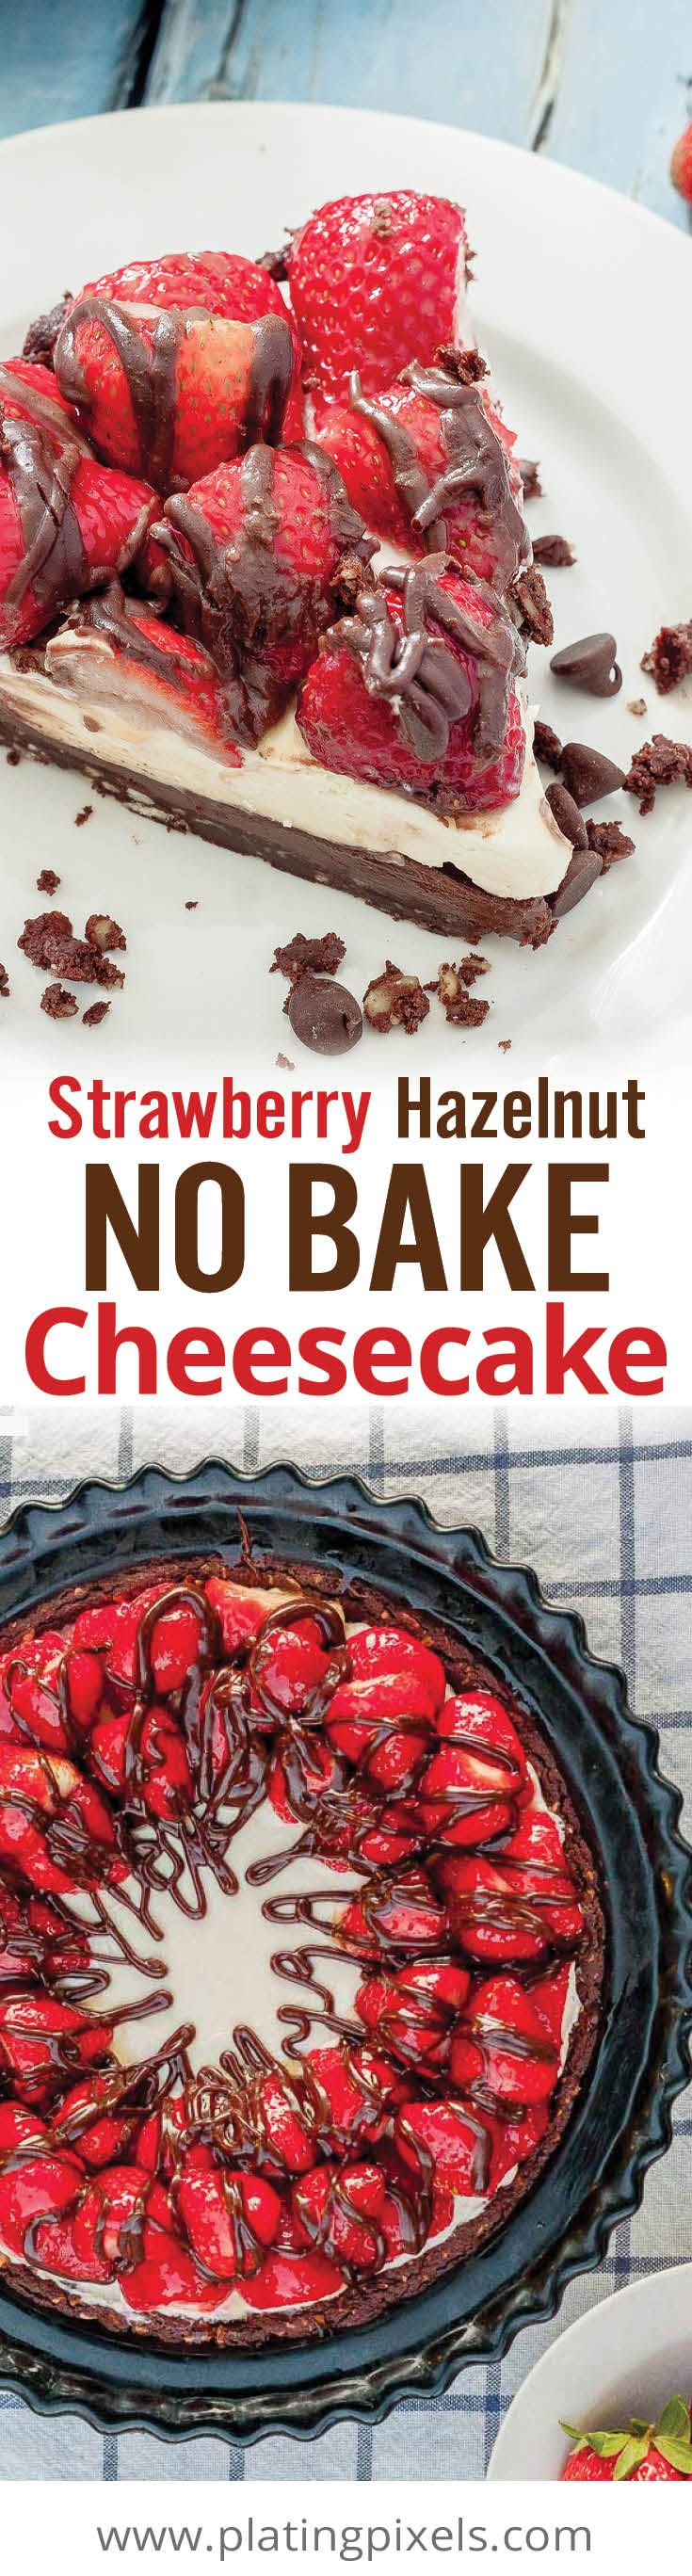 Fresh seasonal summer dessert. Easy Strawberry Hazelnut No Bake Cheesecake with graham cracker crust, Nutella hazelnut spread, cream cheese, sour cream, whipped cream, fresh strawberries and chocolate drizzle. No baking required and only minutes of prep! Serve with new DREYER's ice cream flavors #ad #SweeterTogether - www.platingpixels.com